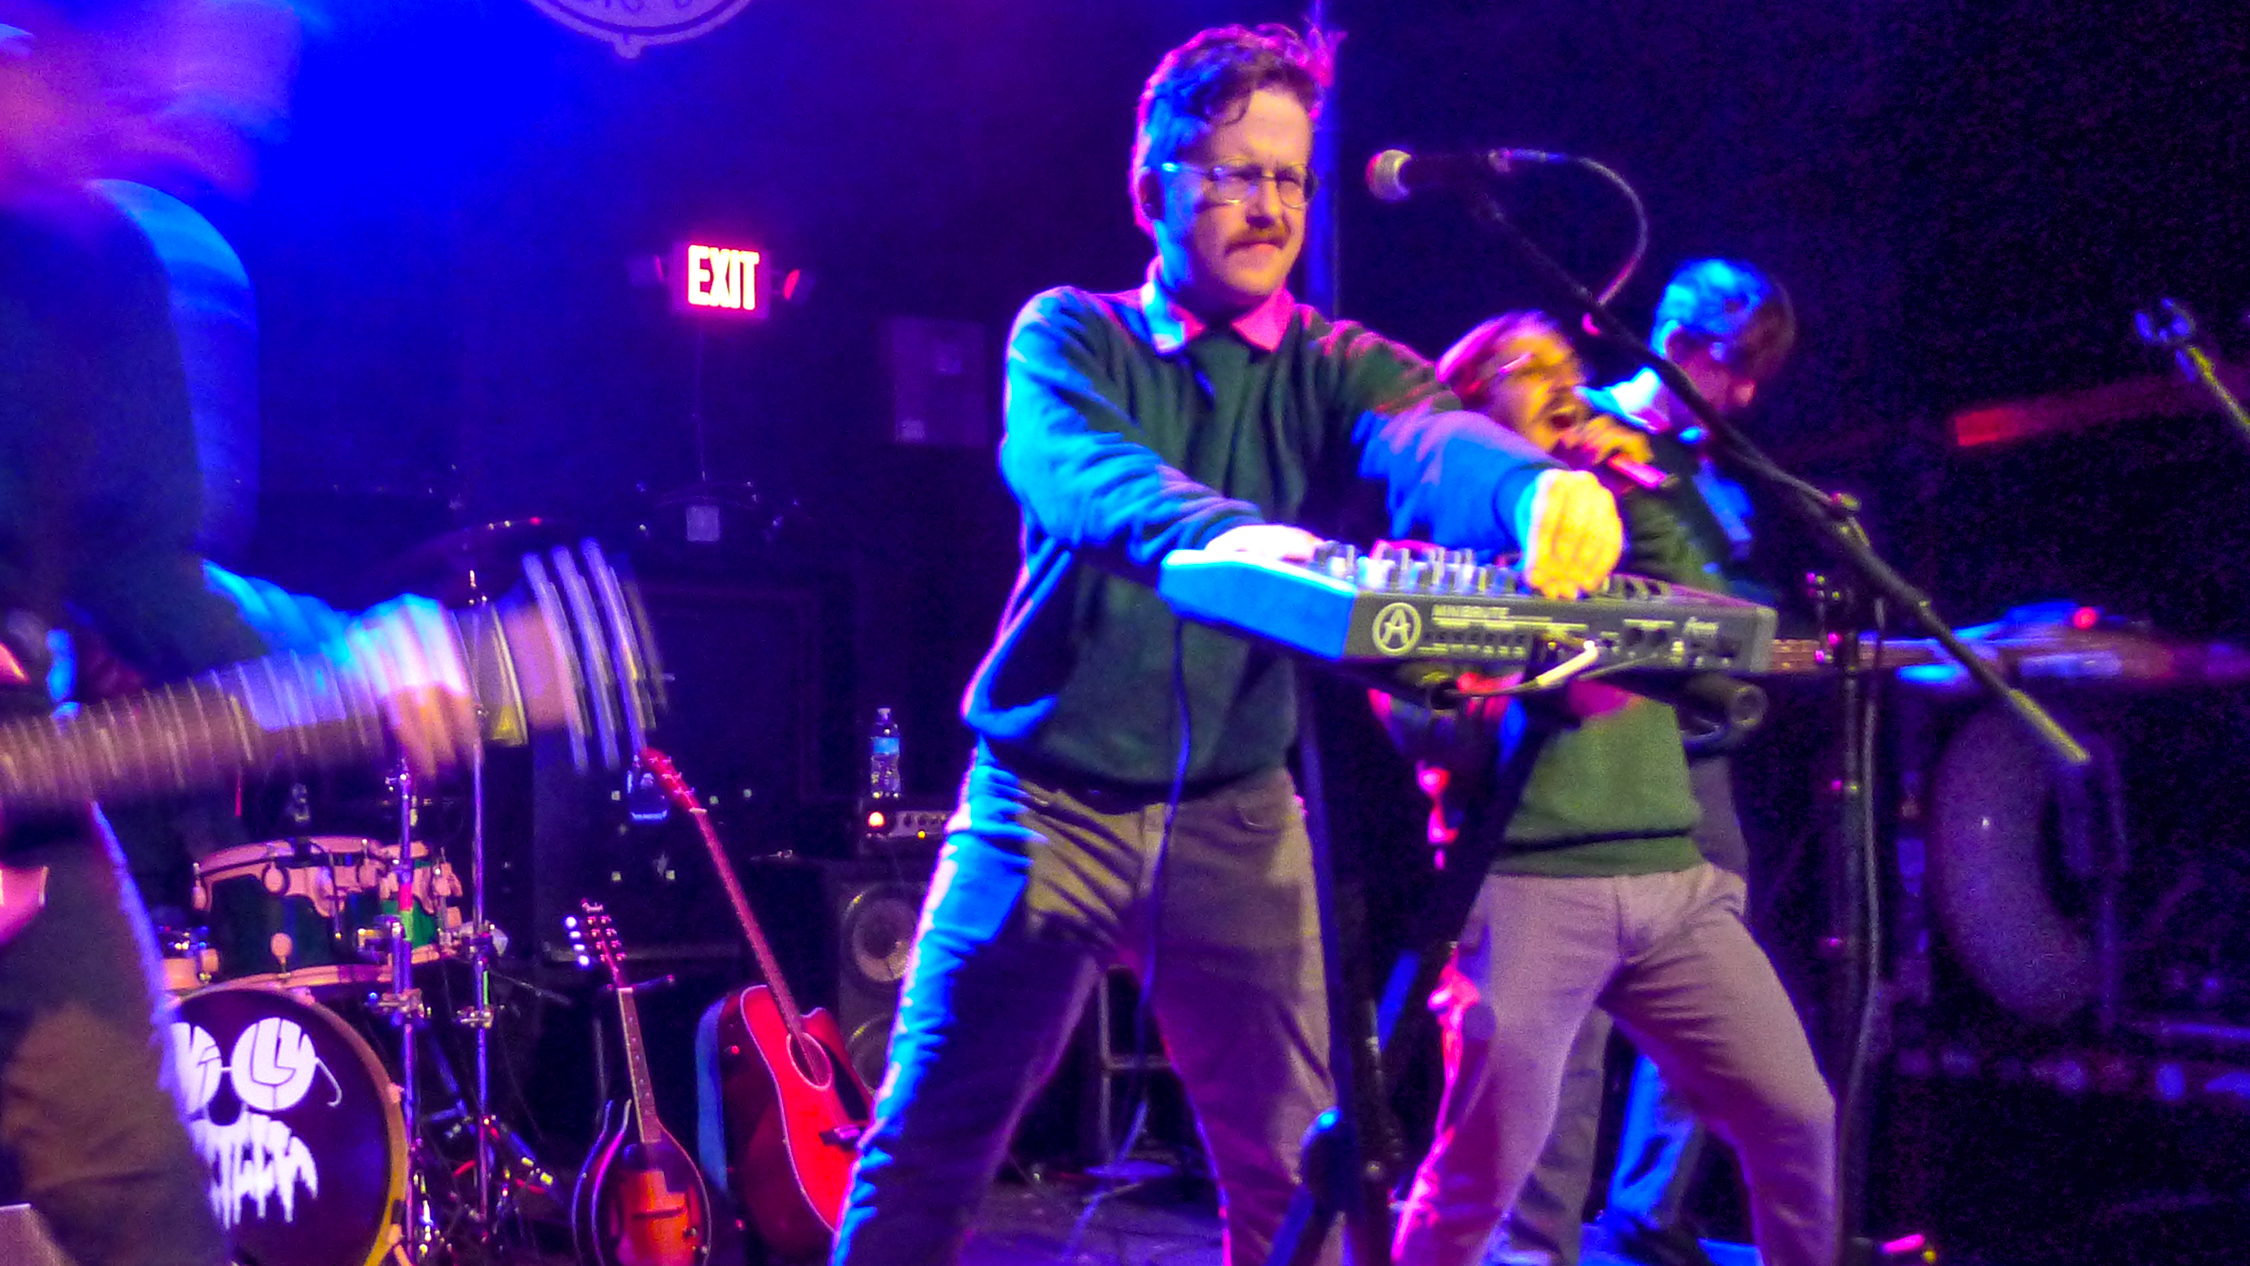 Men dressed as Ned Flanders playing enthusiastically on stage